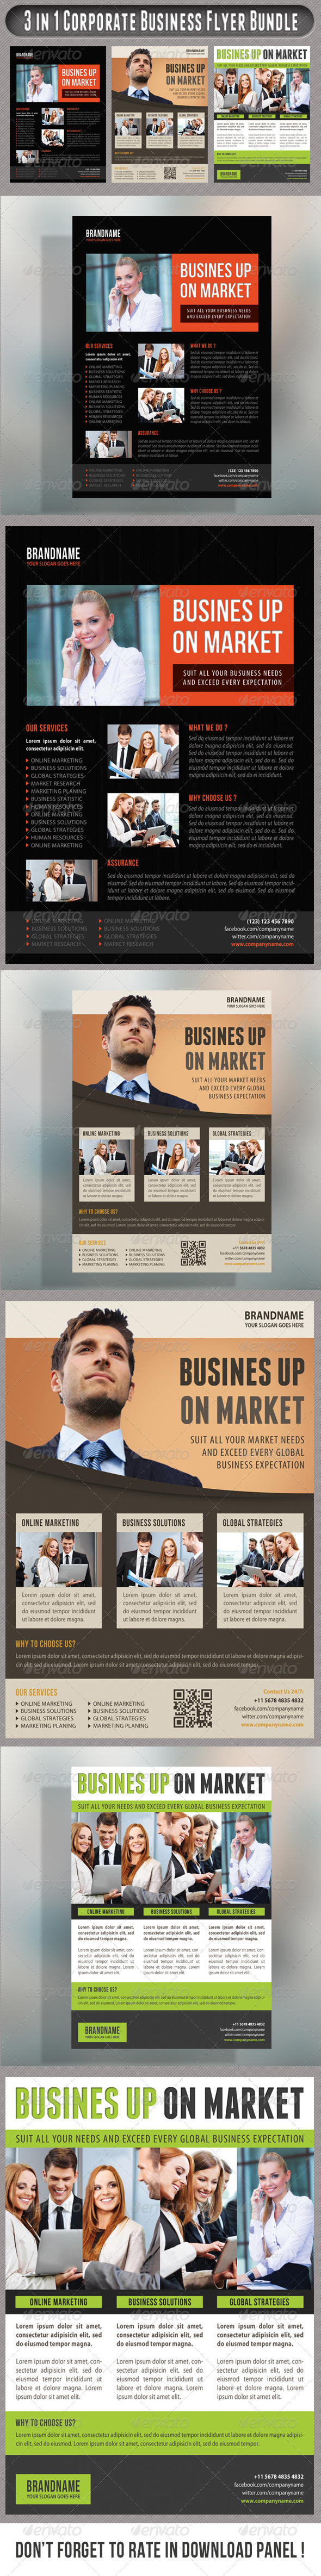 GraphicRiver 3 in 1 Corporate Flyers Bundle 18 7585169